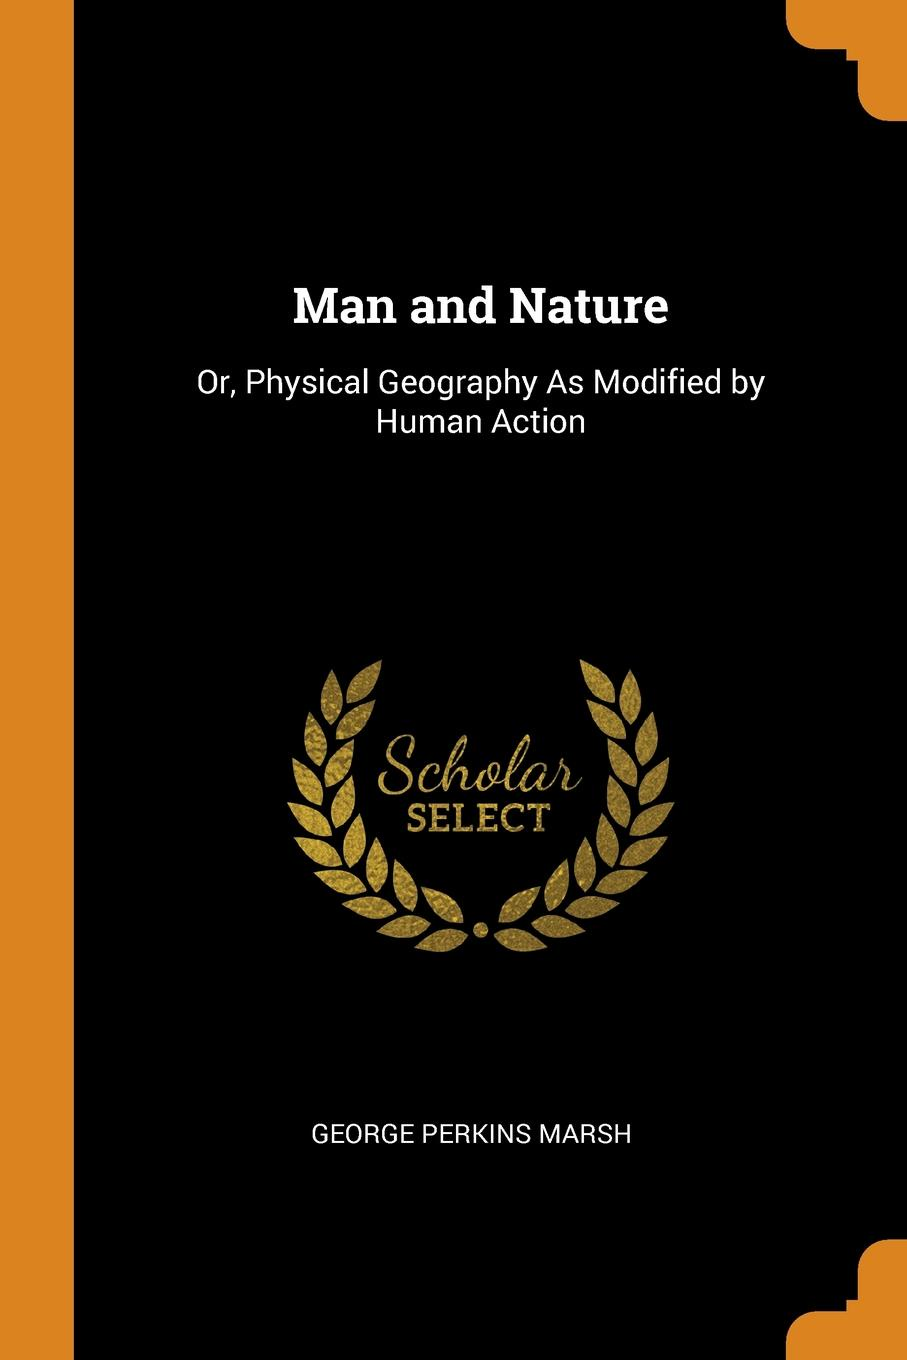 Man and Nature. Or, Physical Geography As Modified by Human Action